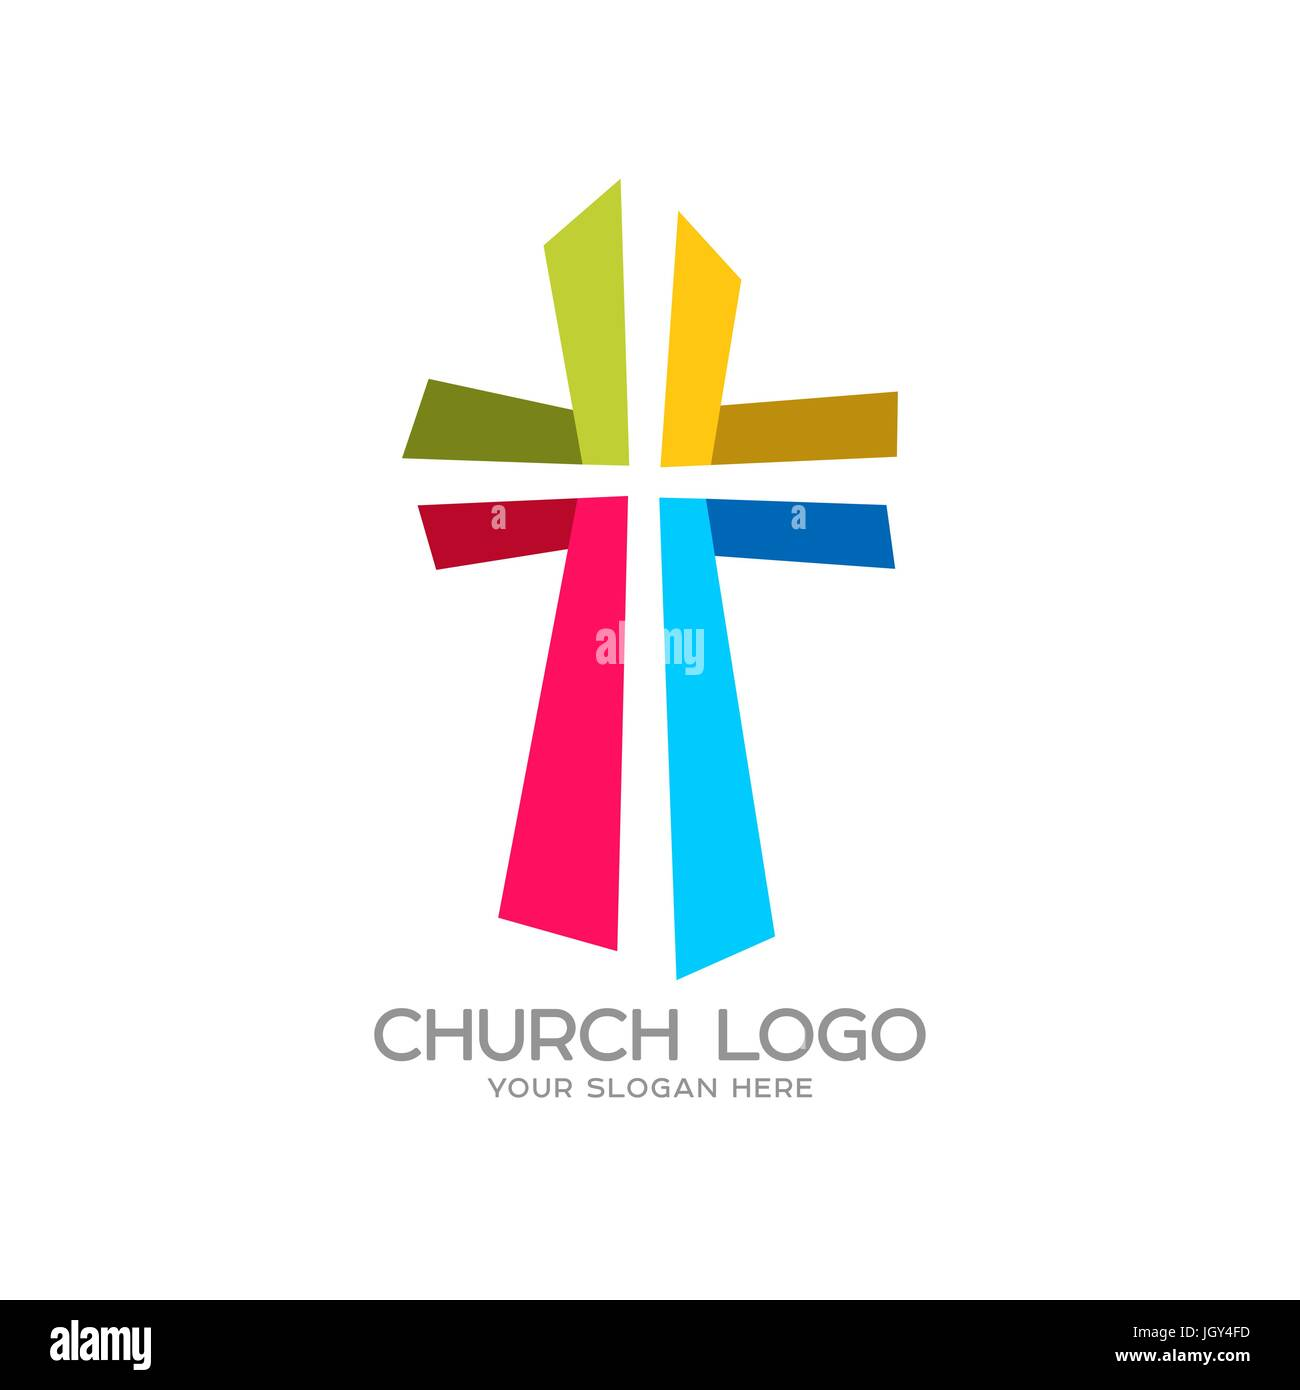 Church logo christian symbols cross of the savior jesus christ church logo christian symbols cross of the savior jesus christ buycottarizona Image collections